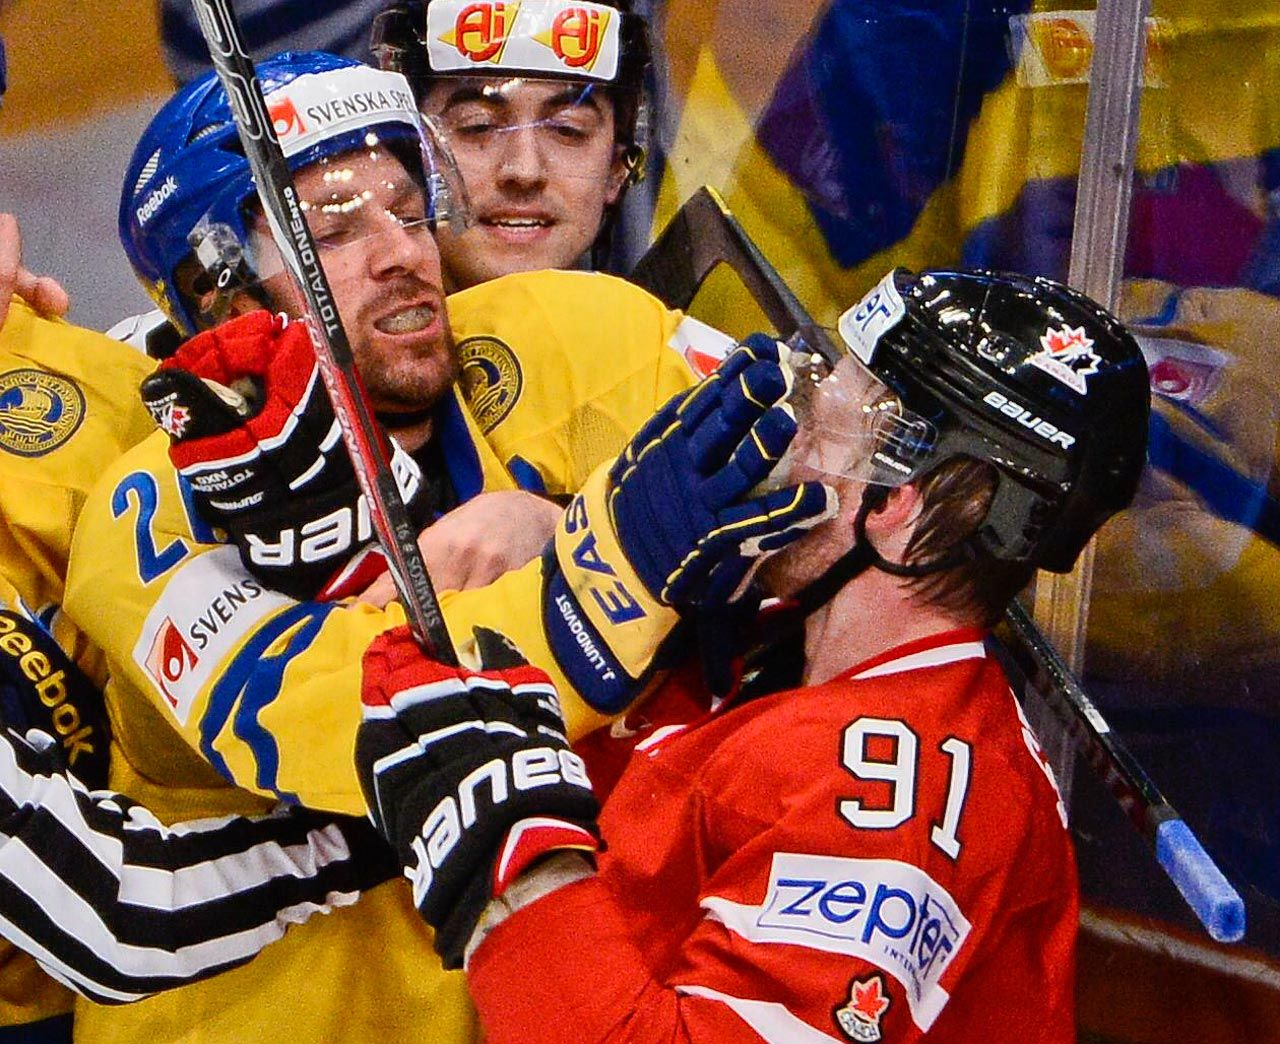 ON THE NOSE In the first image, Sweden's Henrik